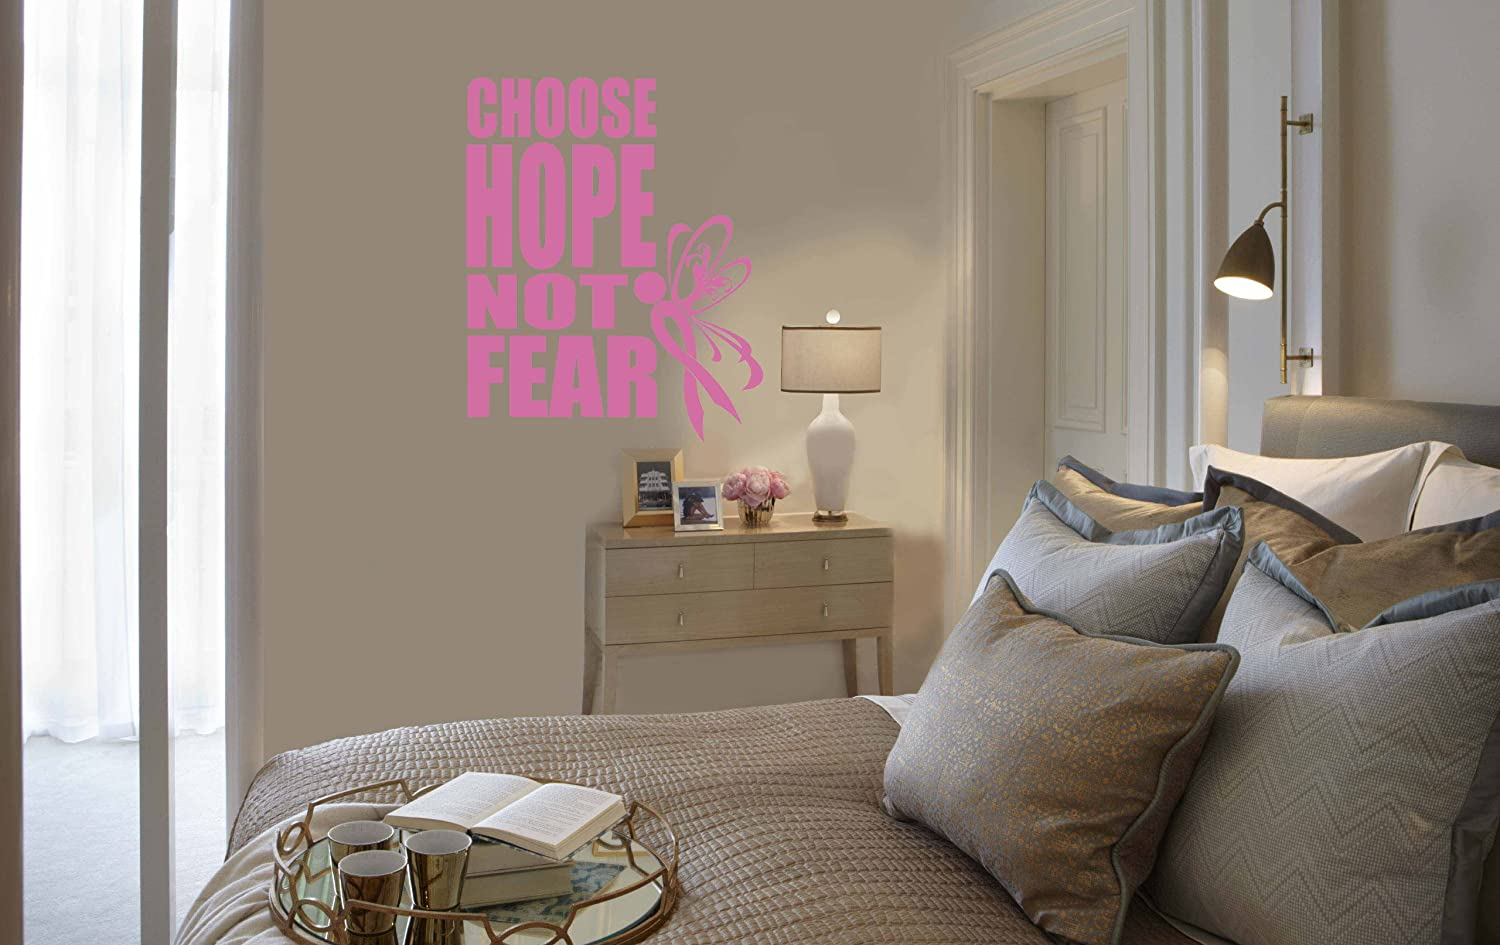 16-Inch x 20-Inch Pink Design with Vinyl Pink Star 1235 Choose Hope Not Fear Breast Cancer Awareness Quote Vinyl Wall Decal